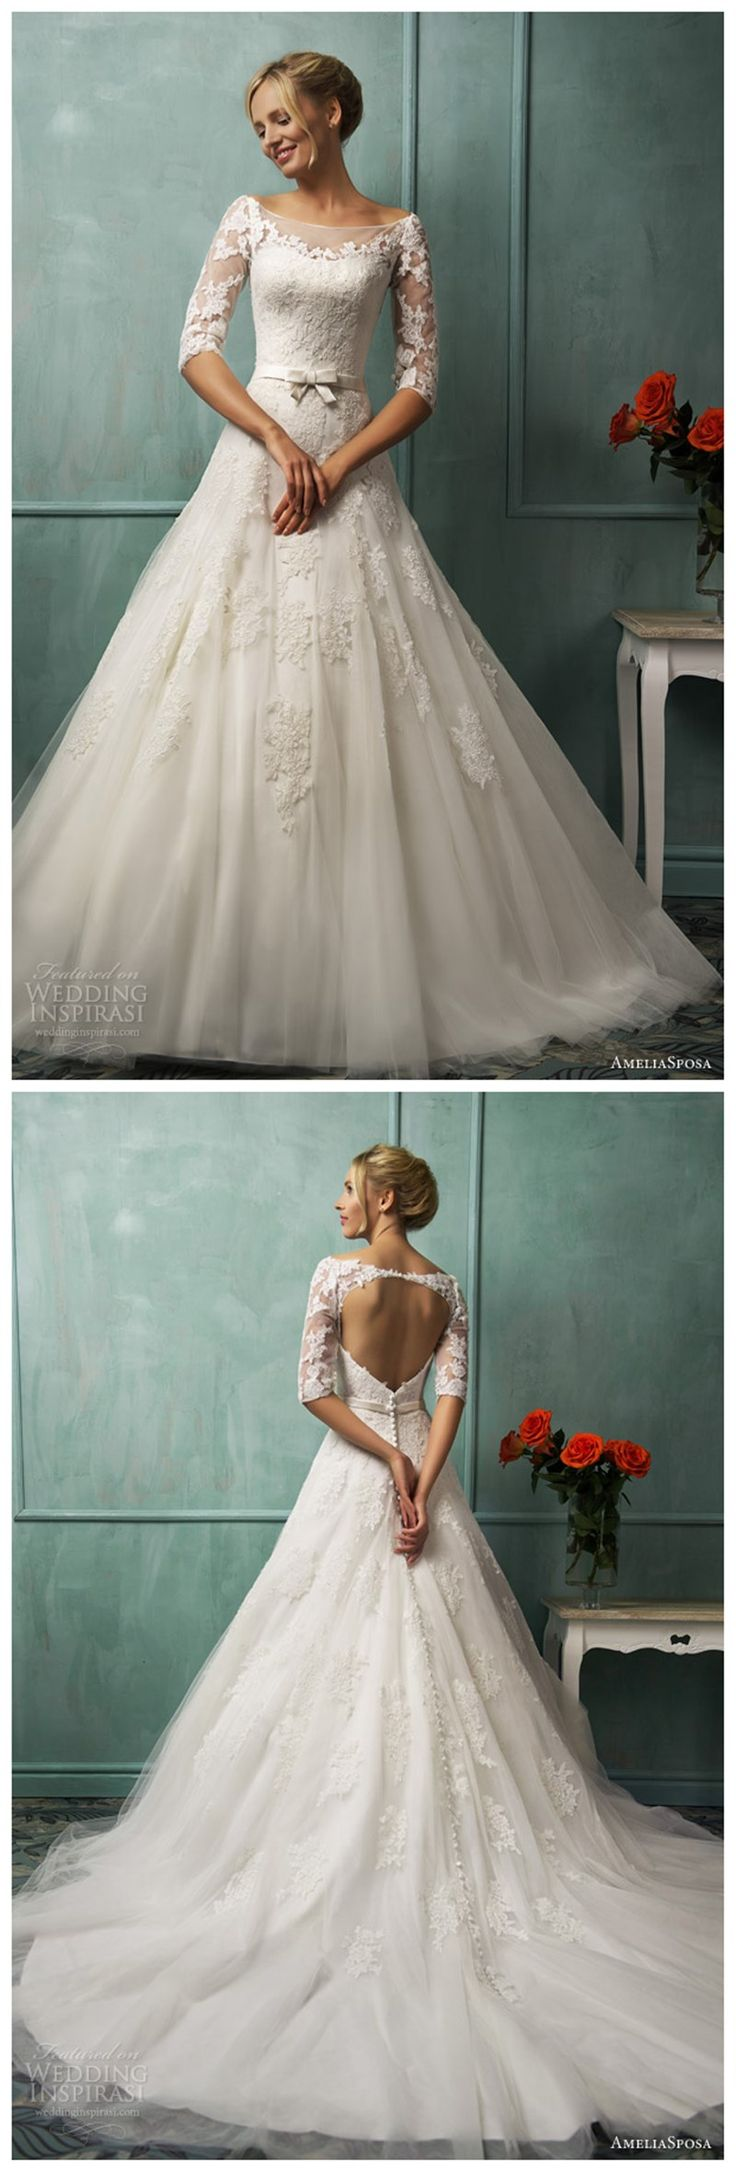 179$ Lace,longsleeves,backlessweddingdresses,http://www.dhgate.com/product/2014-amelia-sposa-scoop-a-line-wedding-dresses/198363406.html